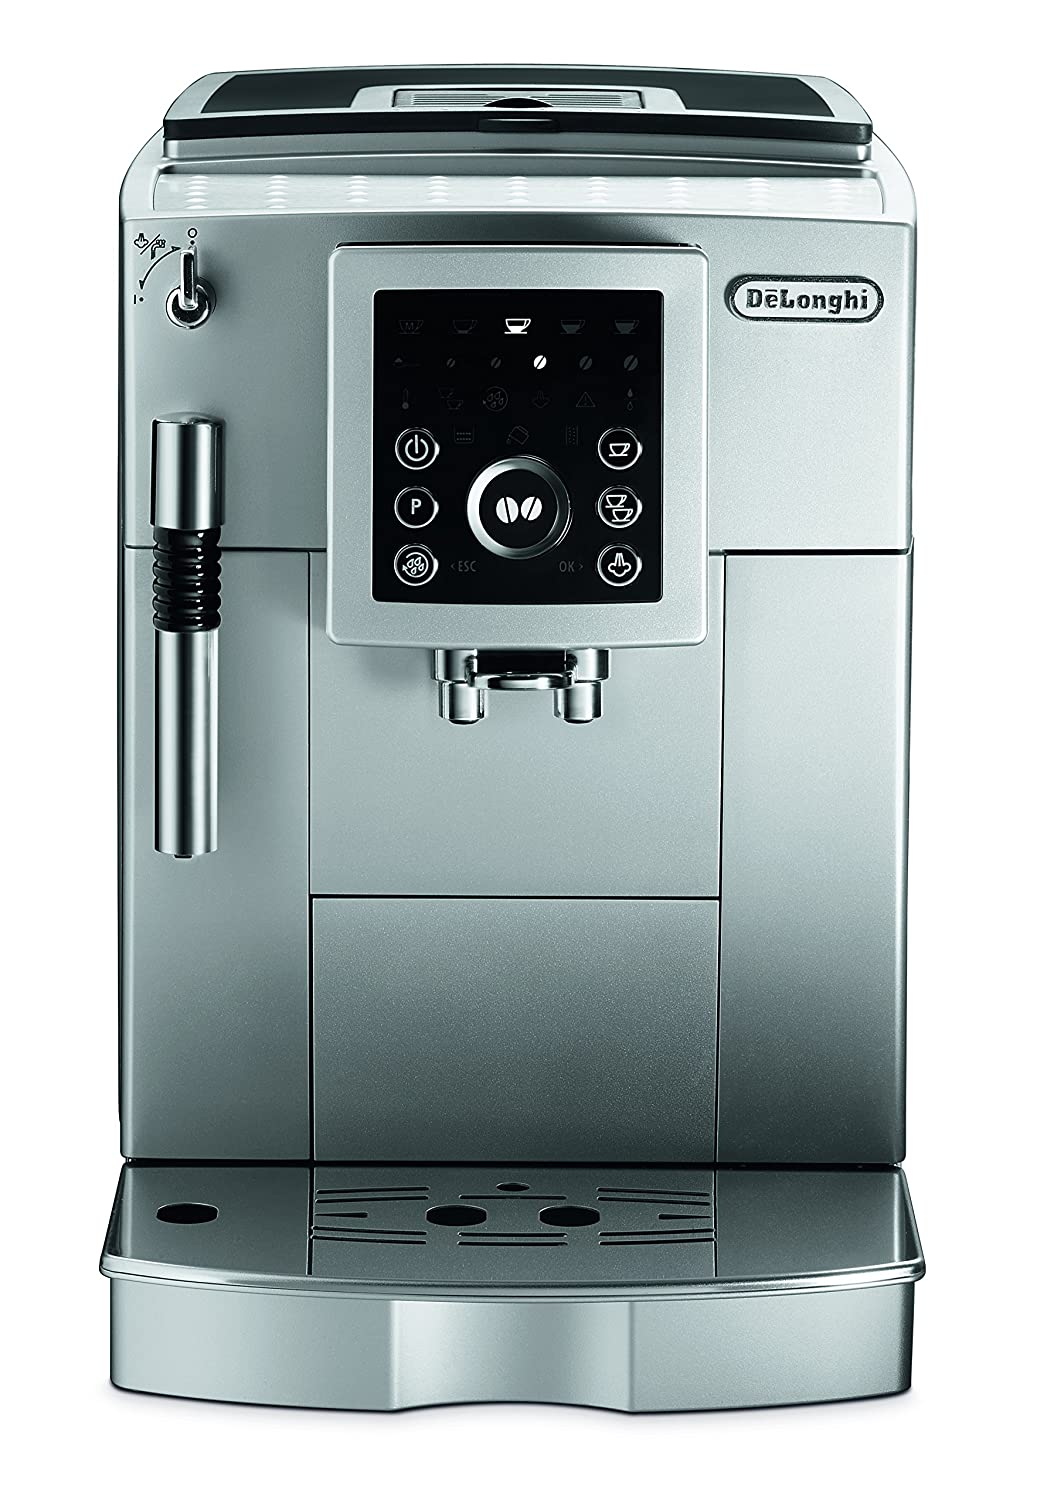 91QzeZZdmzL._SL1500_ amazon com delonghi ecam23210sb super automatic coffee machine  at edmiracle.co